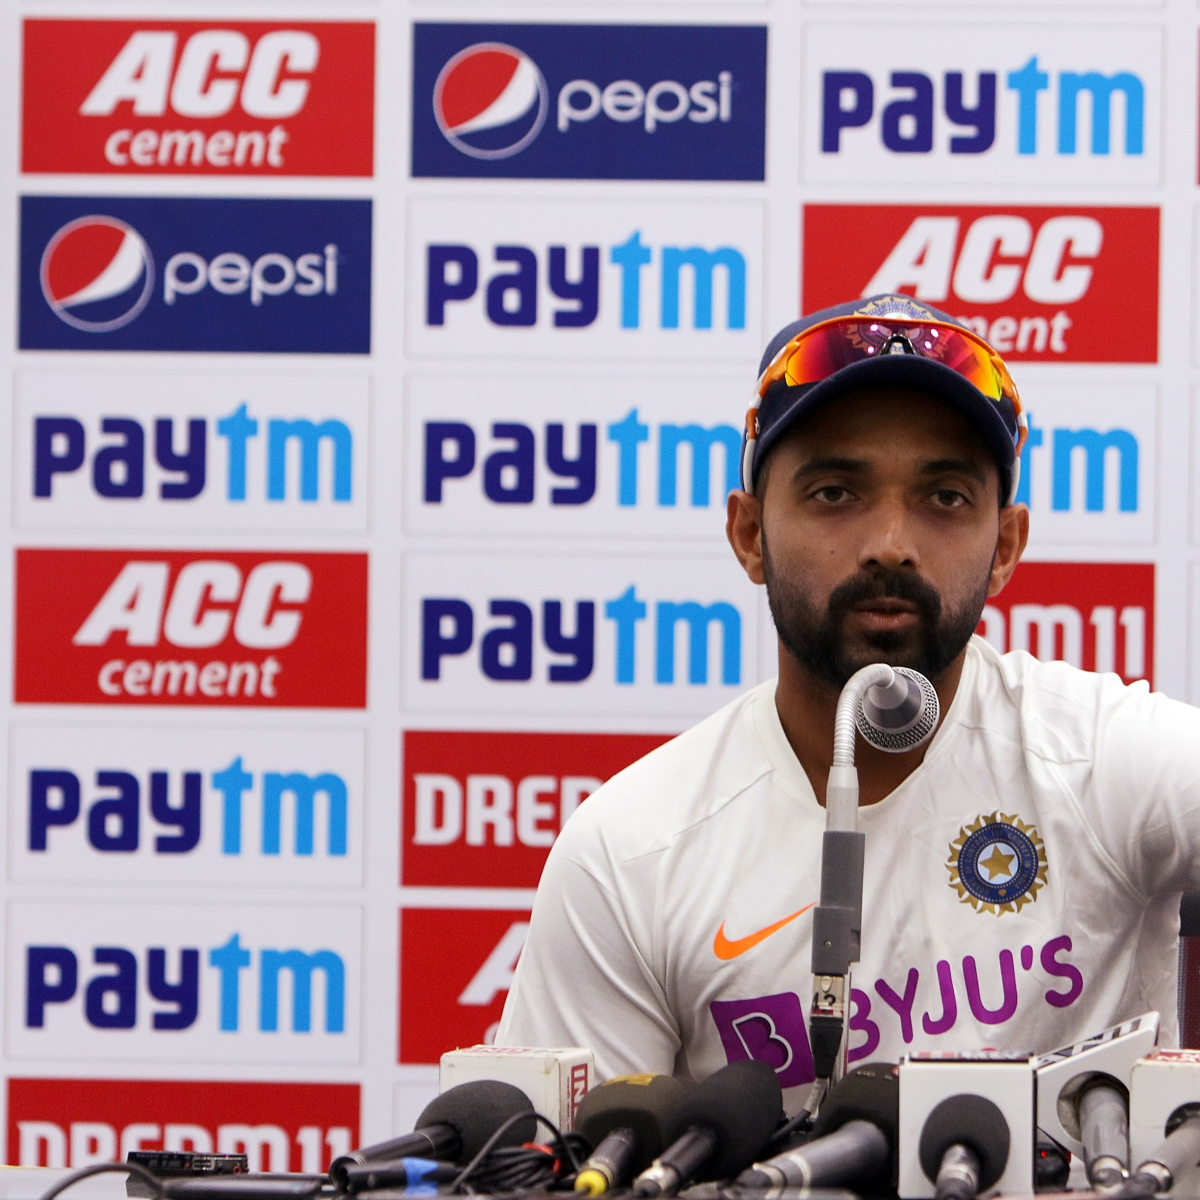 New Zealand vs India: Ajinkya Rahane padded up, already